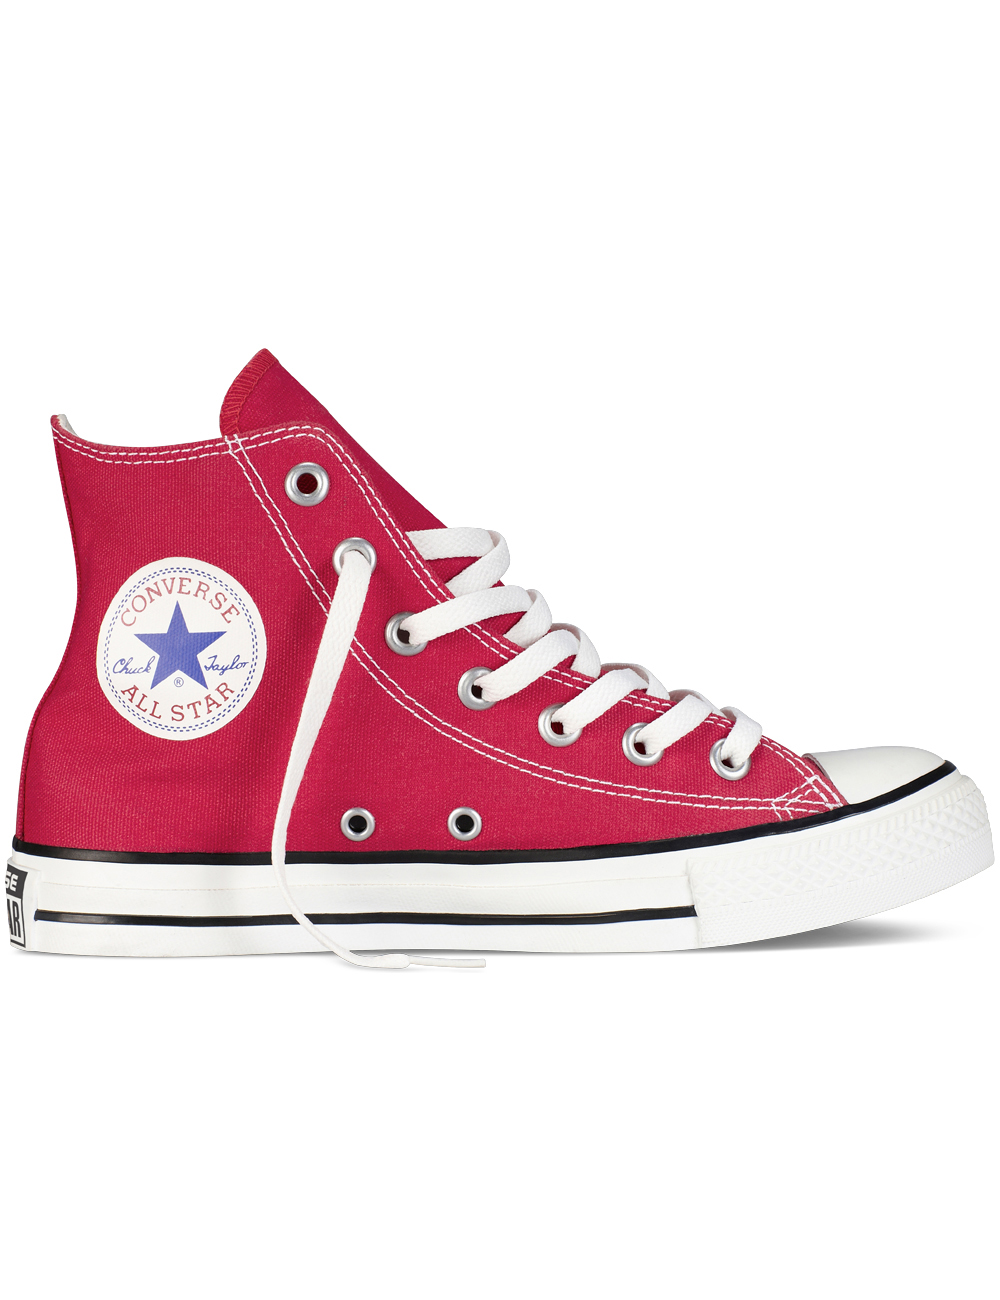 sportschuhe converse all star hoch rot. Black Bedroom Furniture Sets. Home Design Ideas